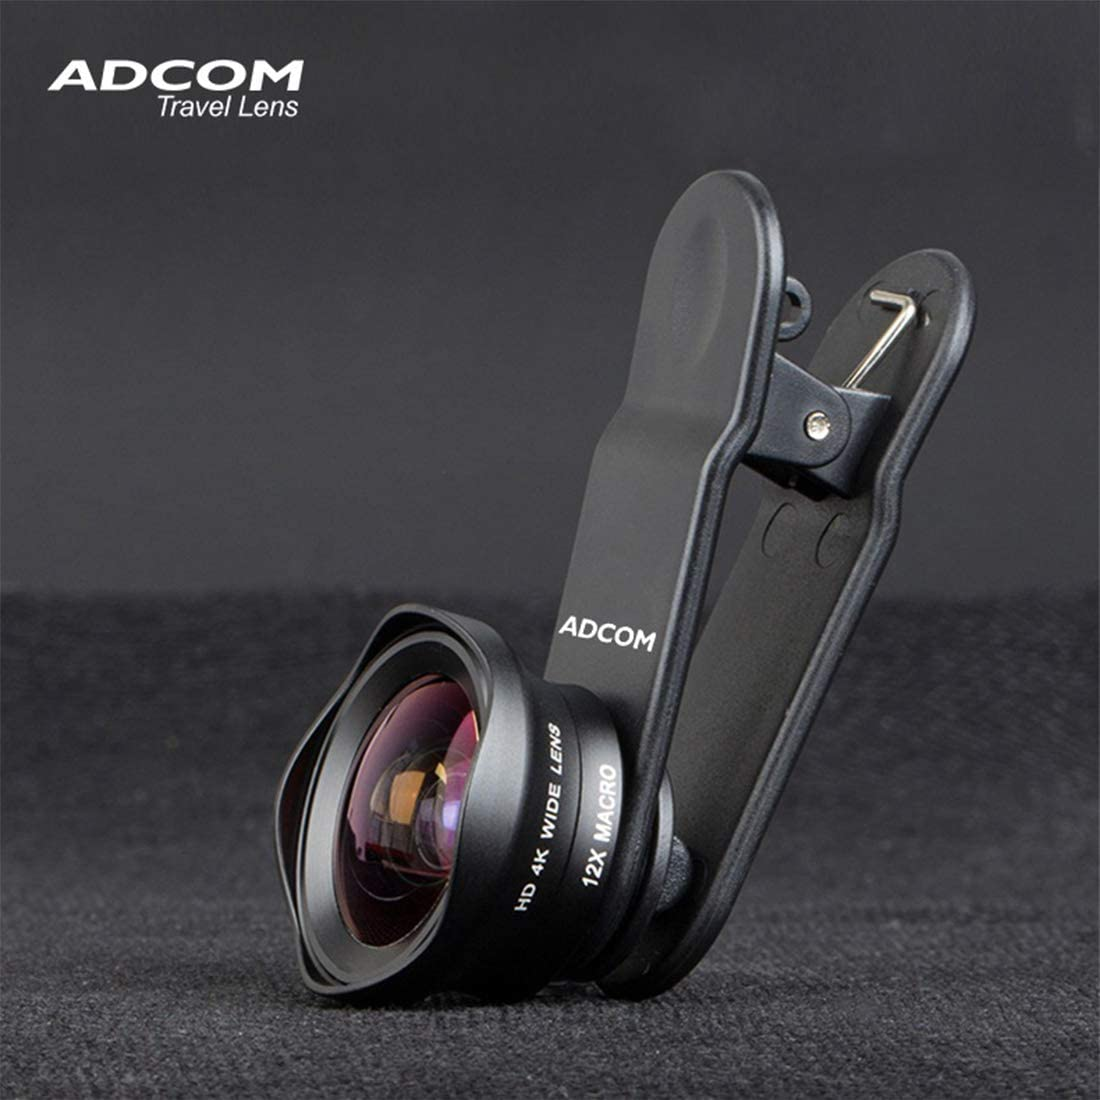 Adcom Wide Angle + Macro Clip on Mobile Phone Camera Lens - Compatible with All iPhone & Android Smartphones (Black)